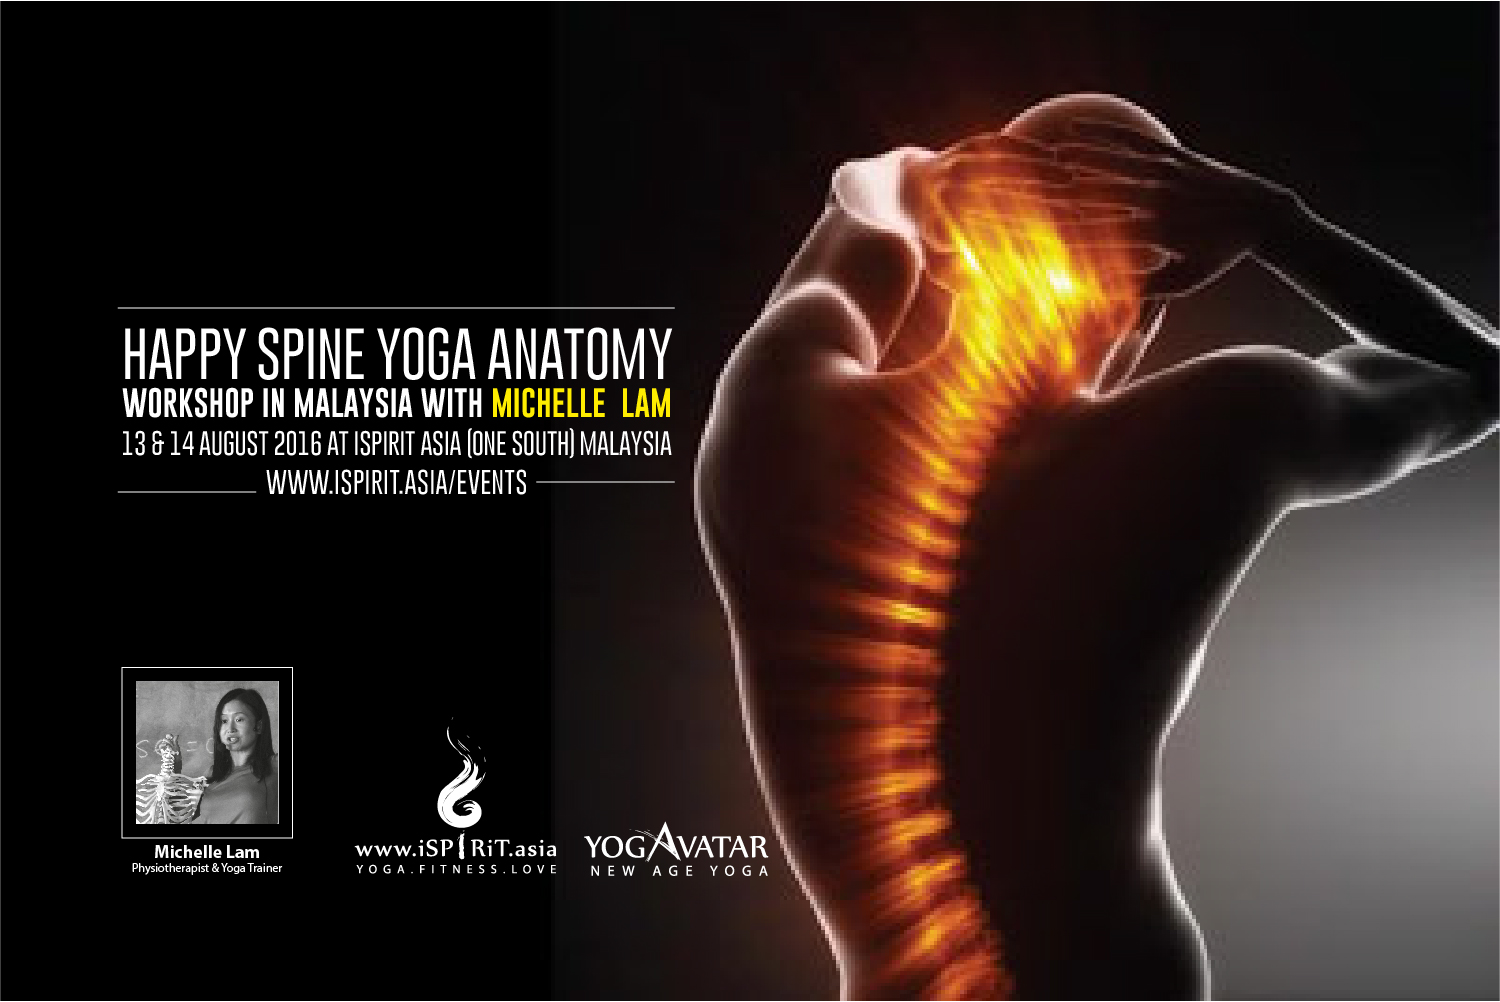 Happy Spine Yoga Anatomy Workshop With Michelle Lam